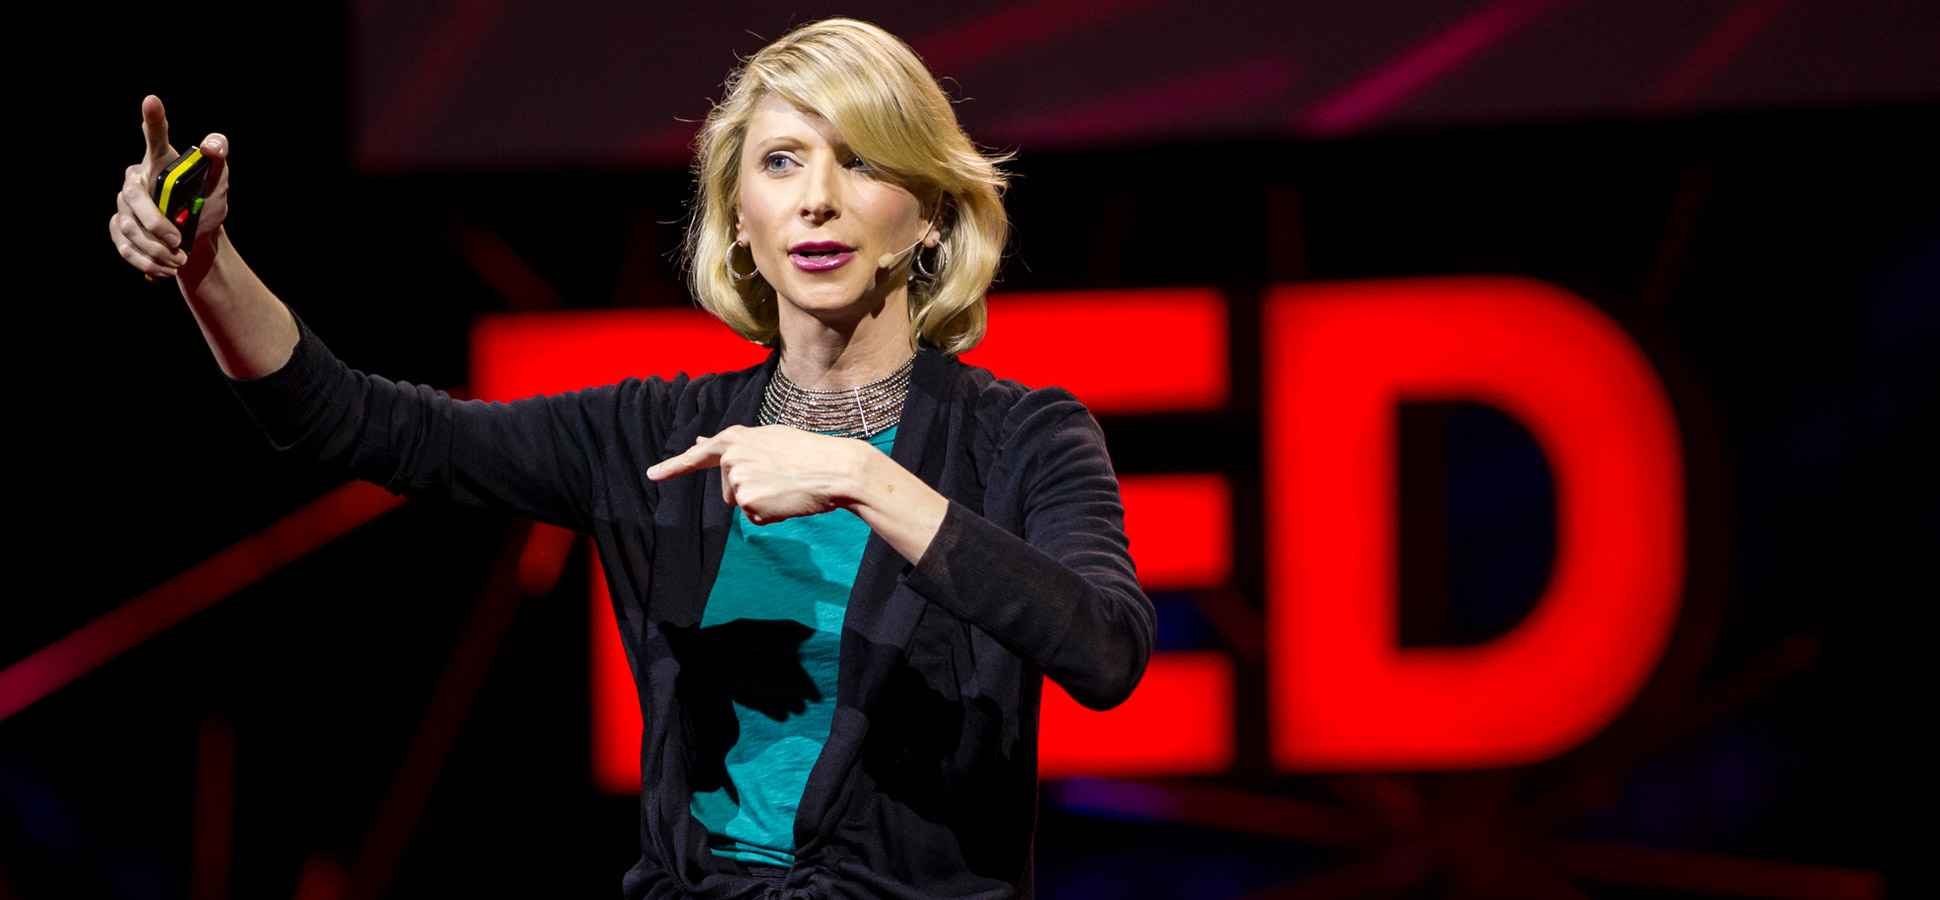 10 Motivational TED Talks to Start Your Morning